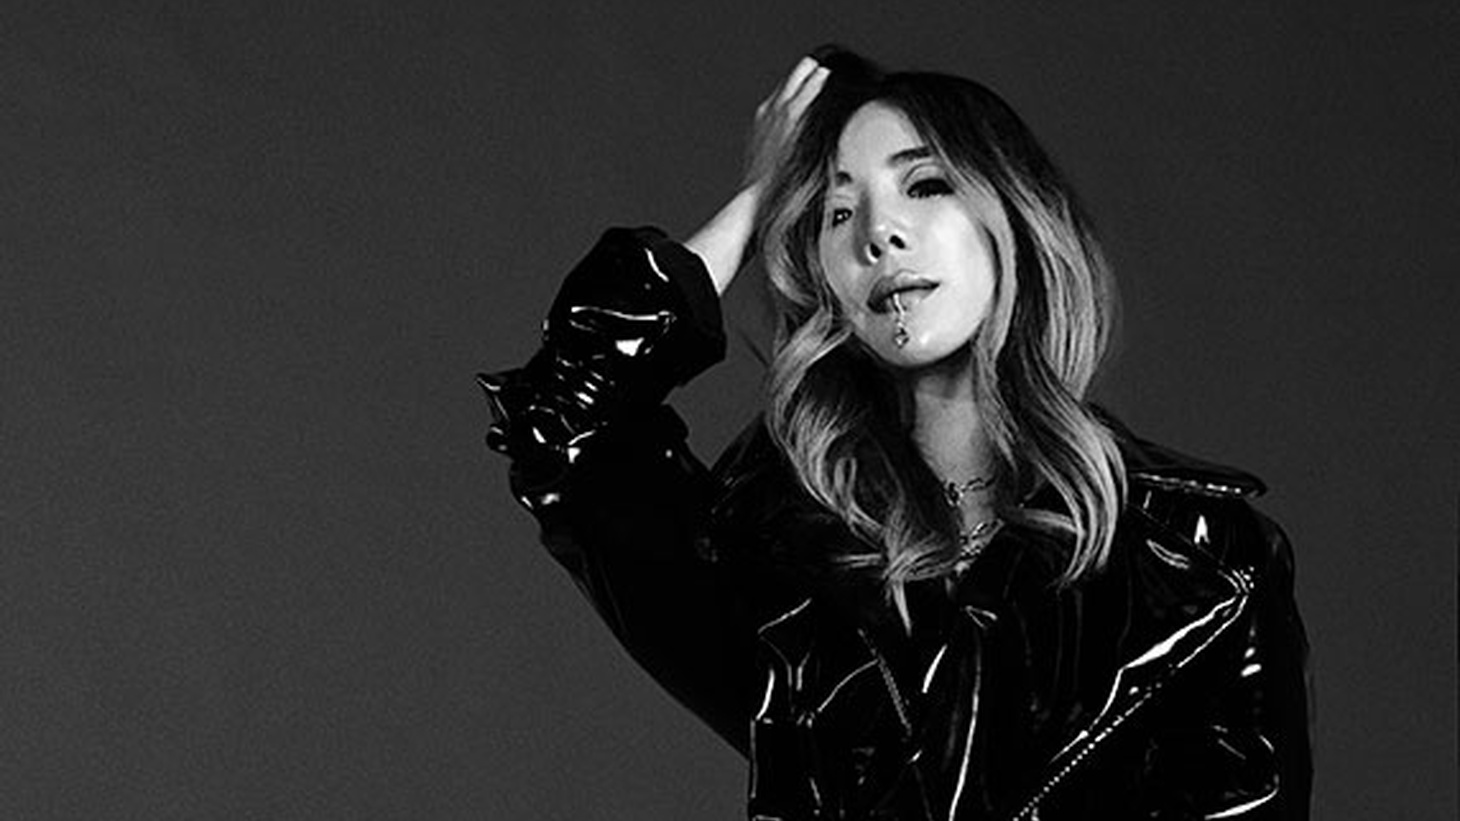 Jennifer Lee, A.K.A TOKiMONSTA has made her presence known in LA's music scene producing fearless kinetic-psychedelic hip-hop beats over the past few years.We are thrilled to welcome TOKiMONSTA, who's in the middle of a world tour, to Metropolis with an exclusive mix.